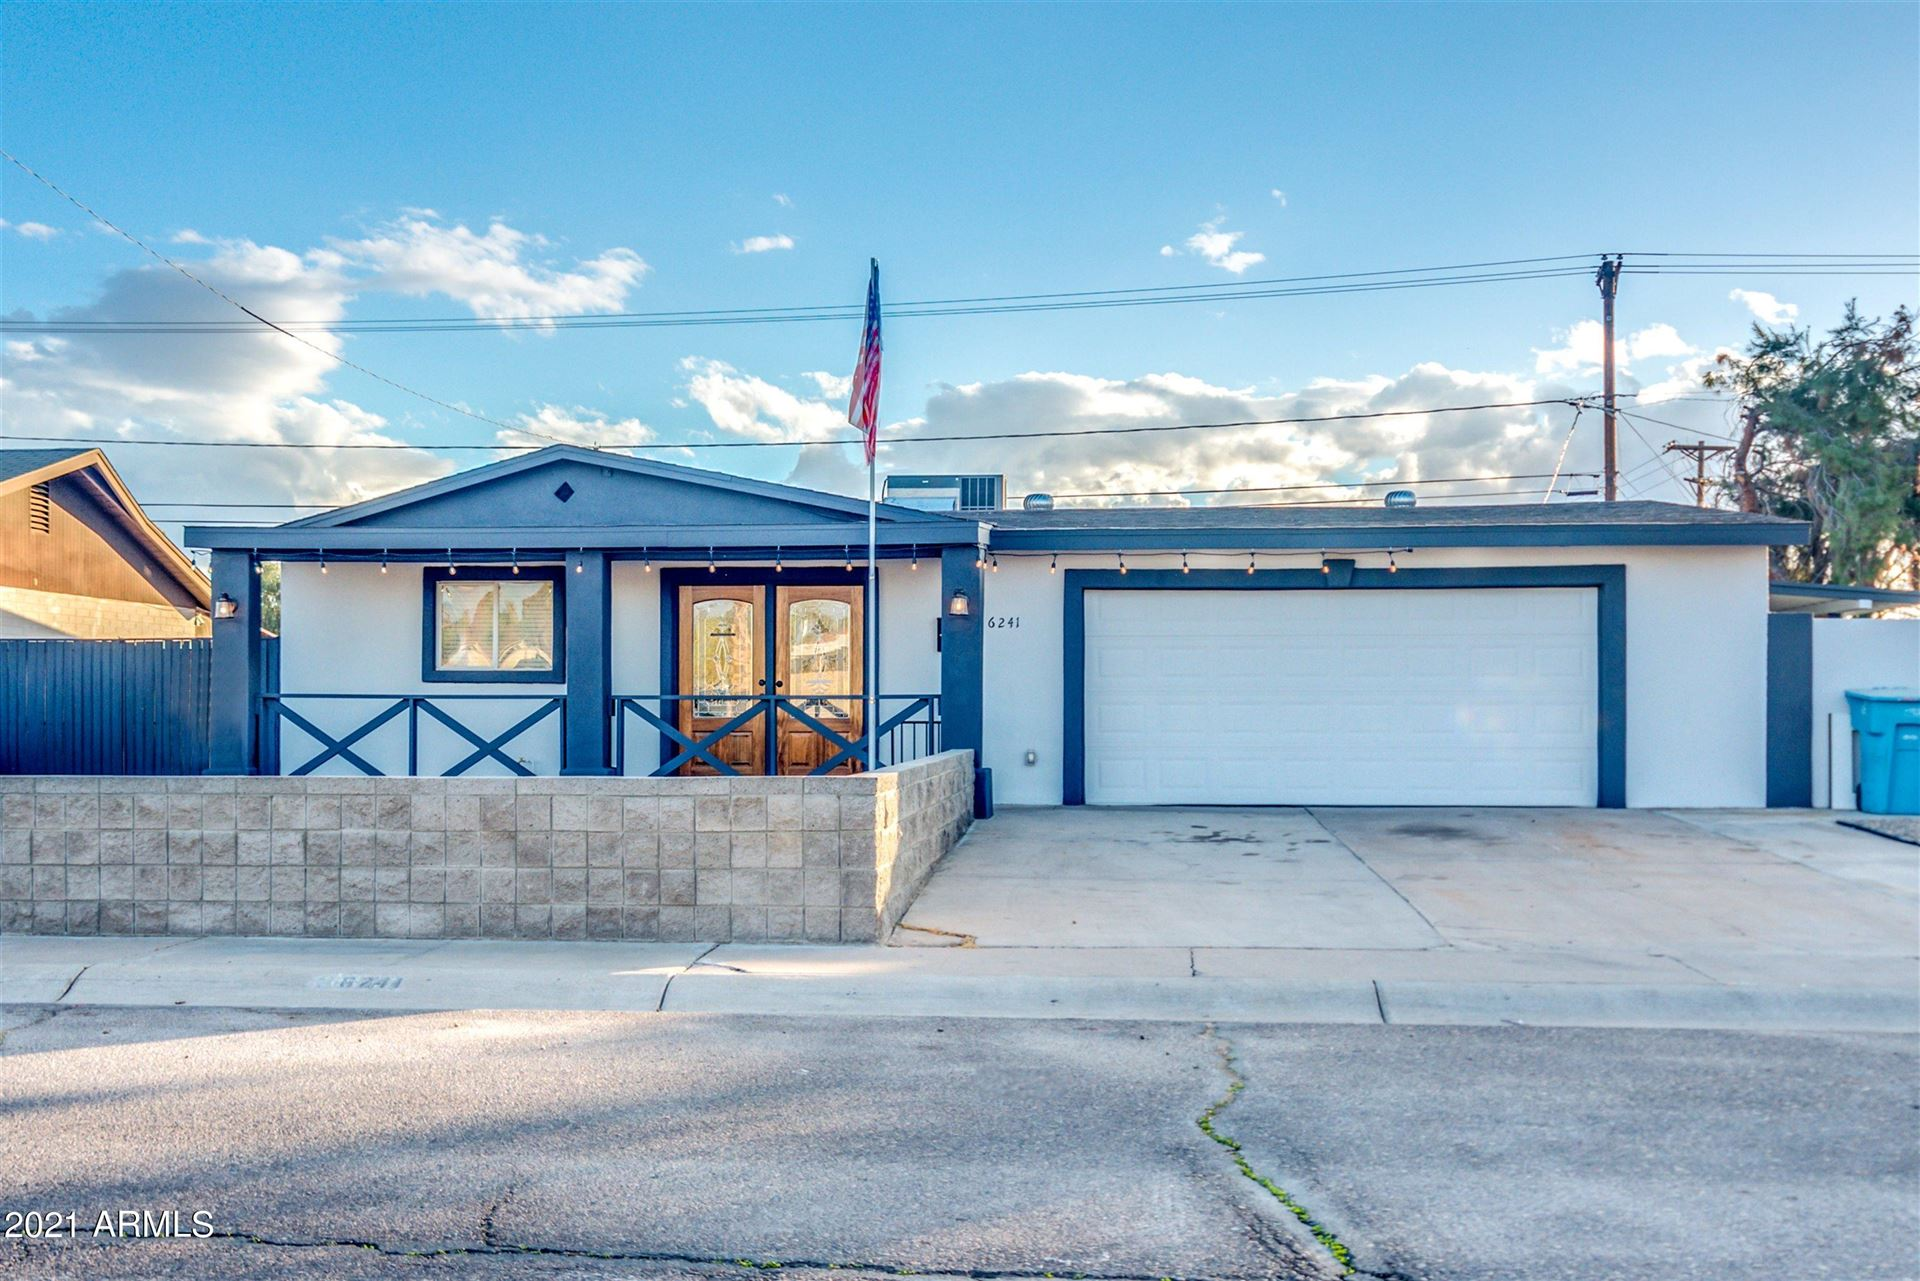 6241 W CLARENDON Avenue, Phoenix, AZ 85033 - MLS#: 6181183